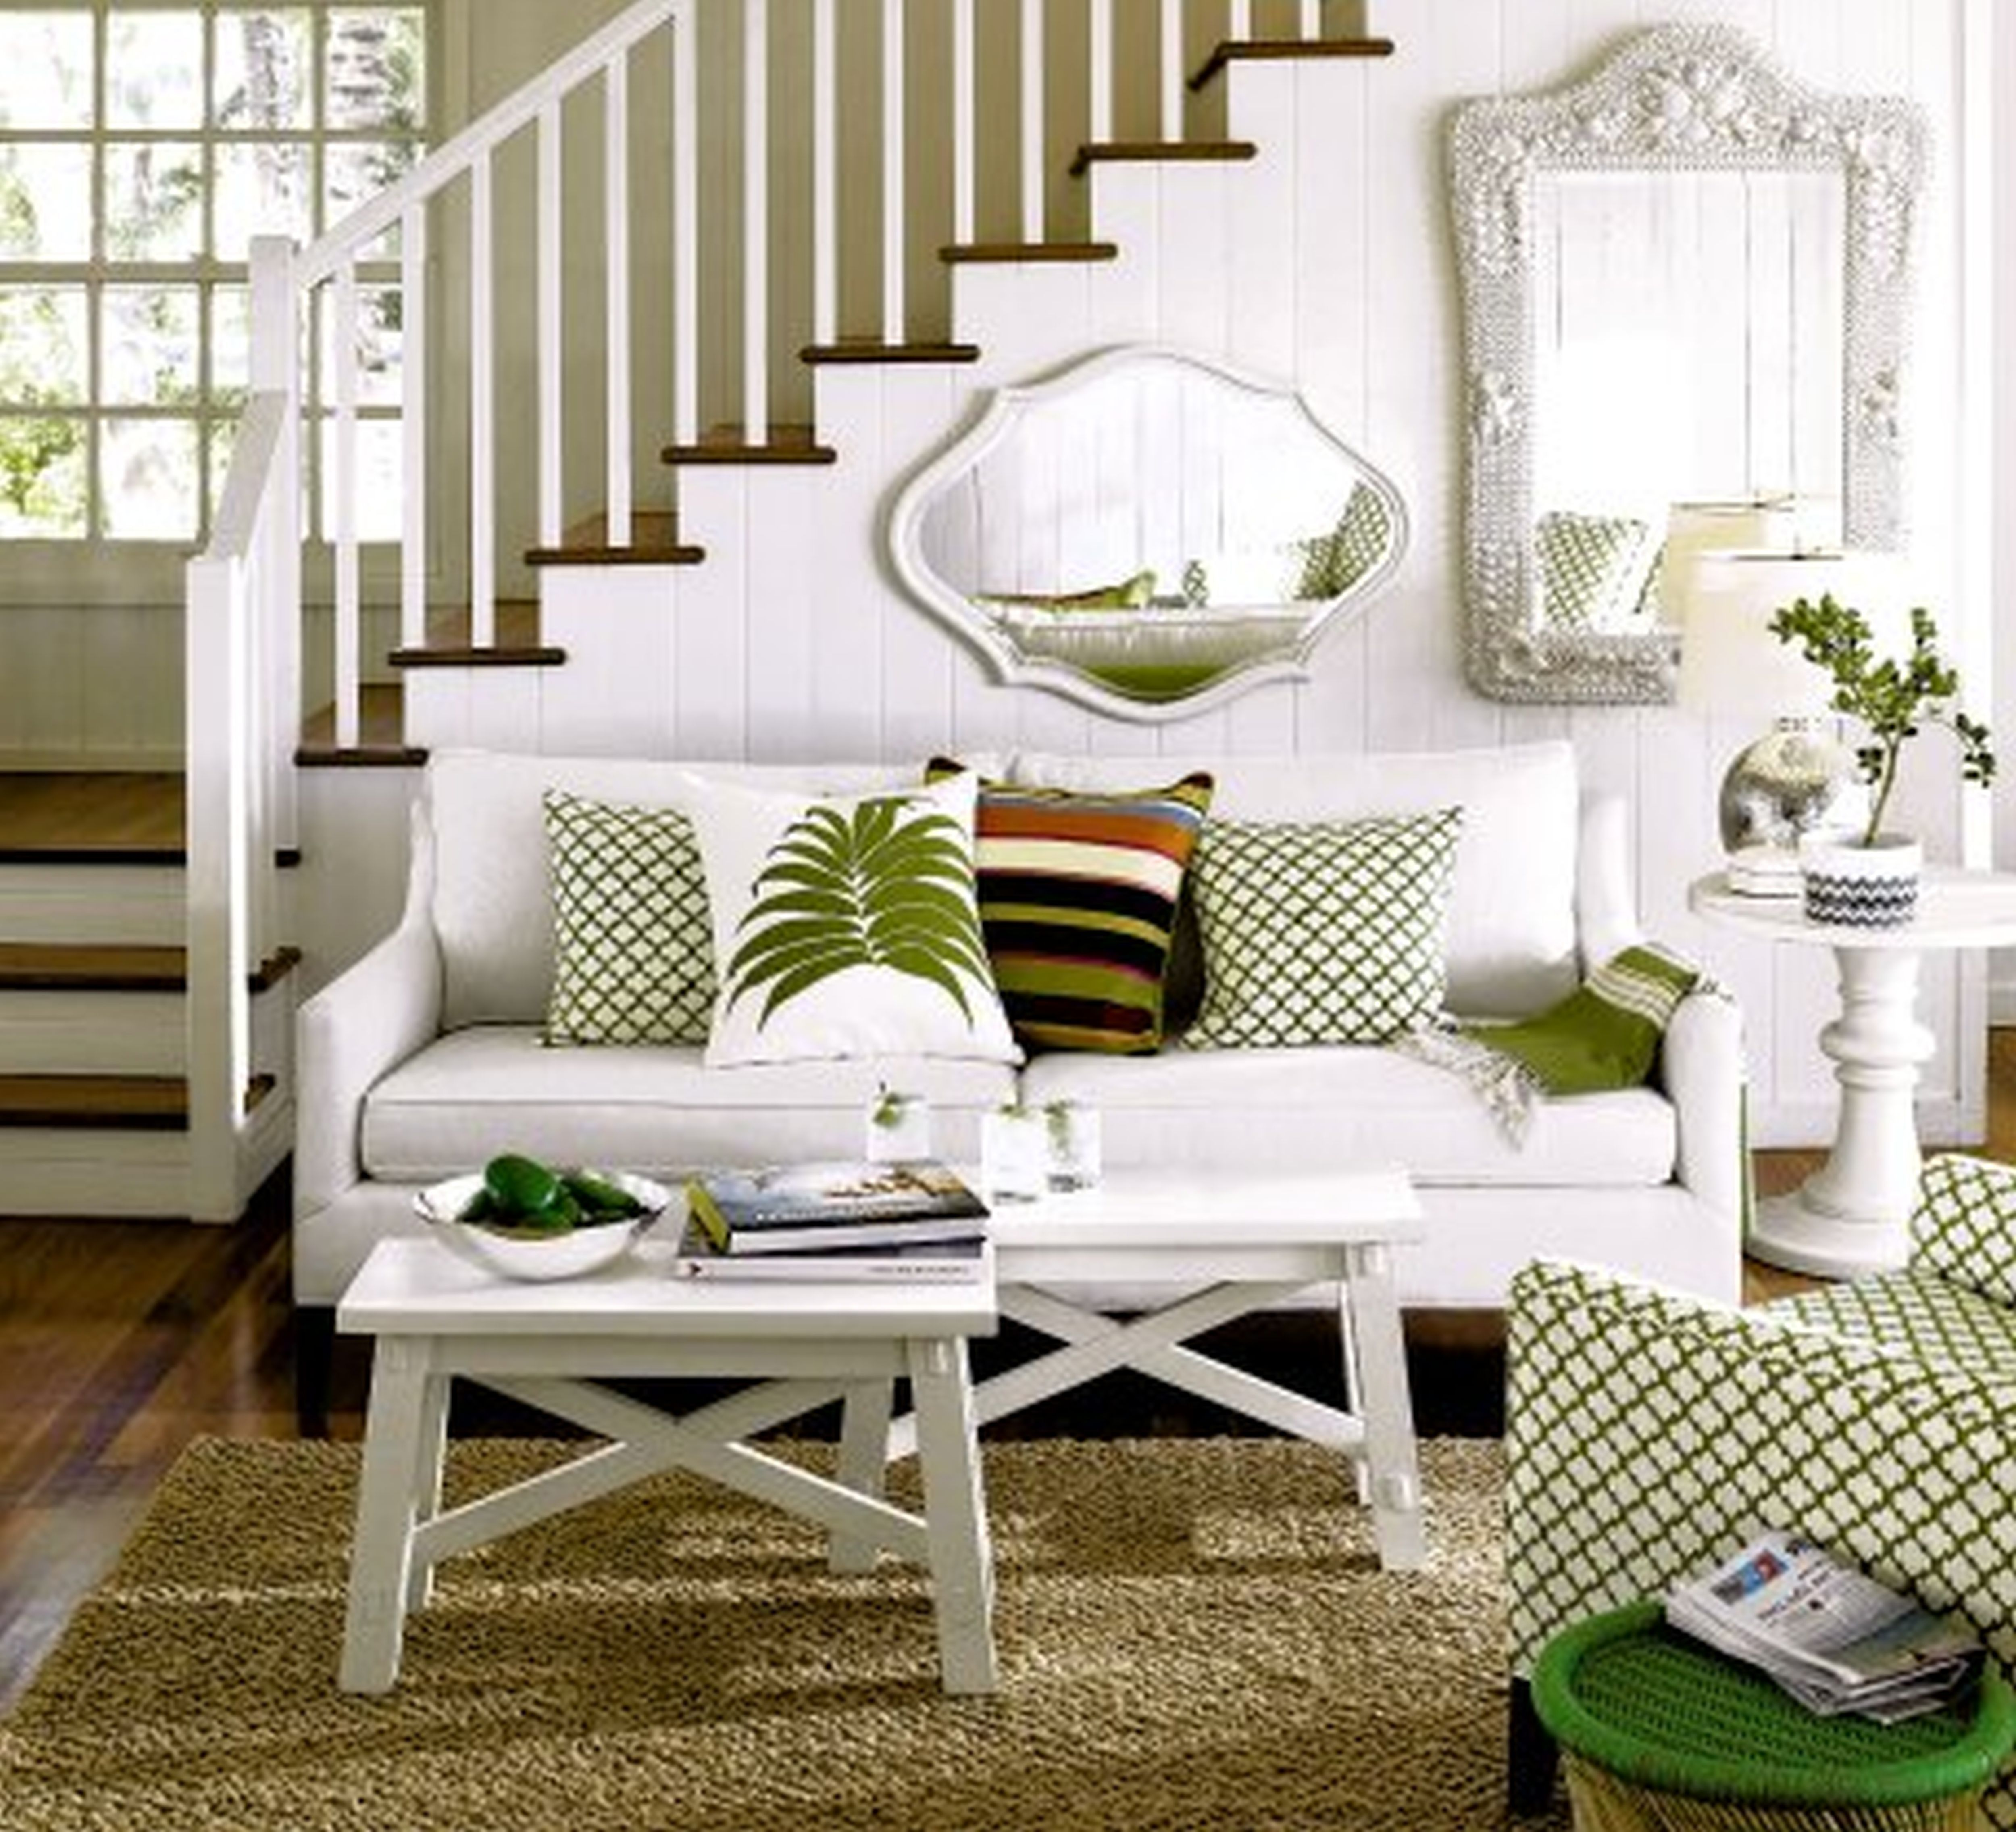 Pleasureable White Fabric 2 Seater Sofas And Benches Coffee Table ...